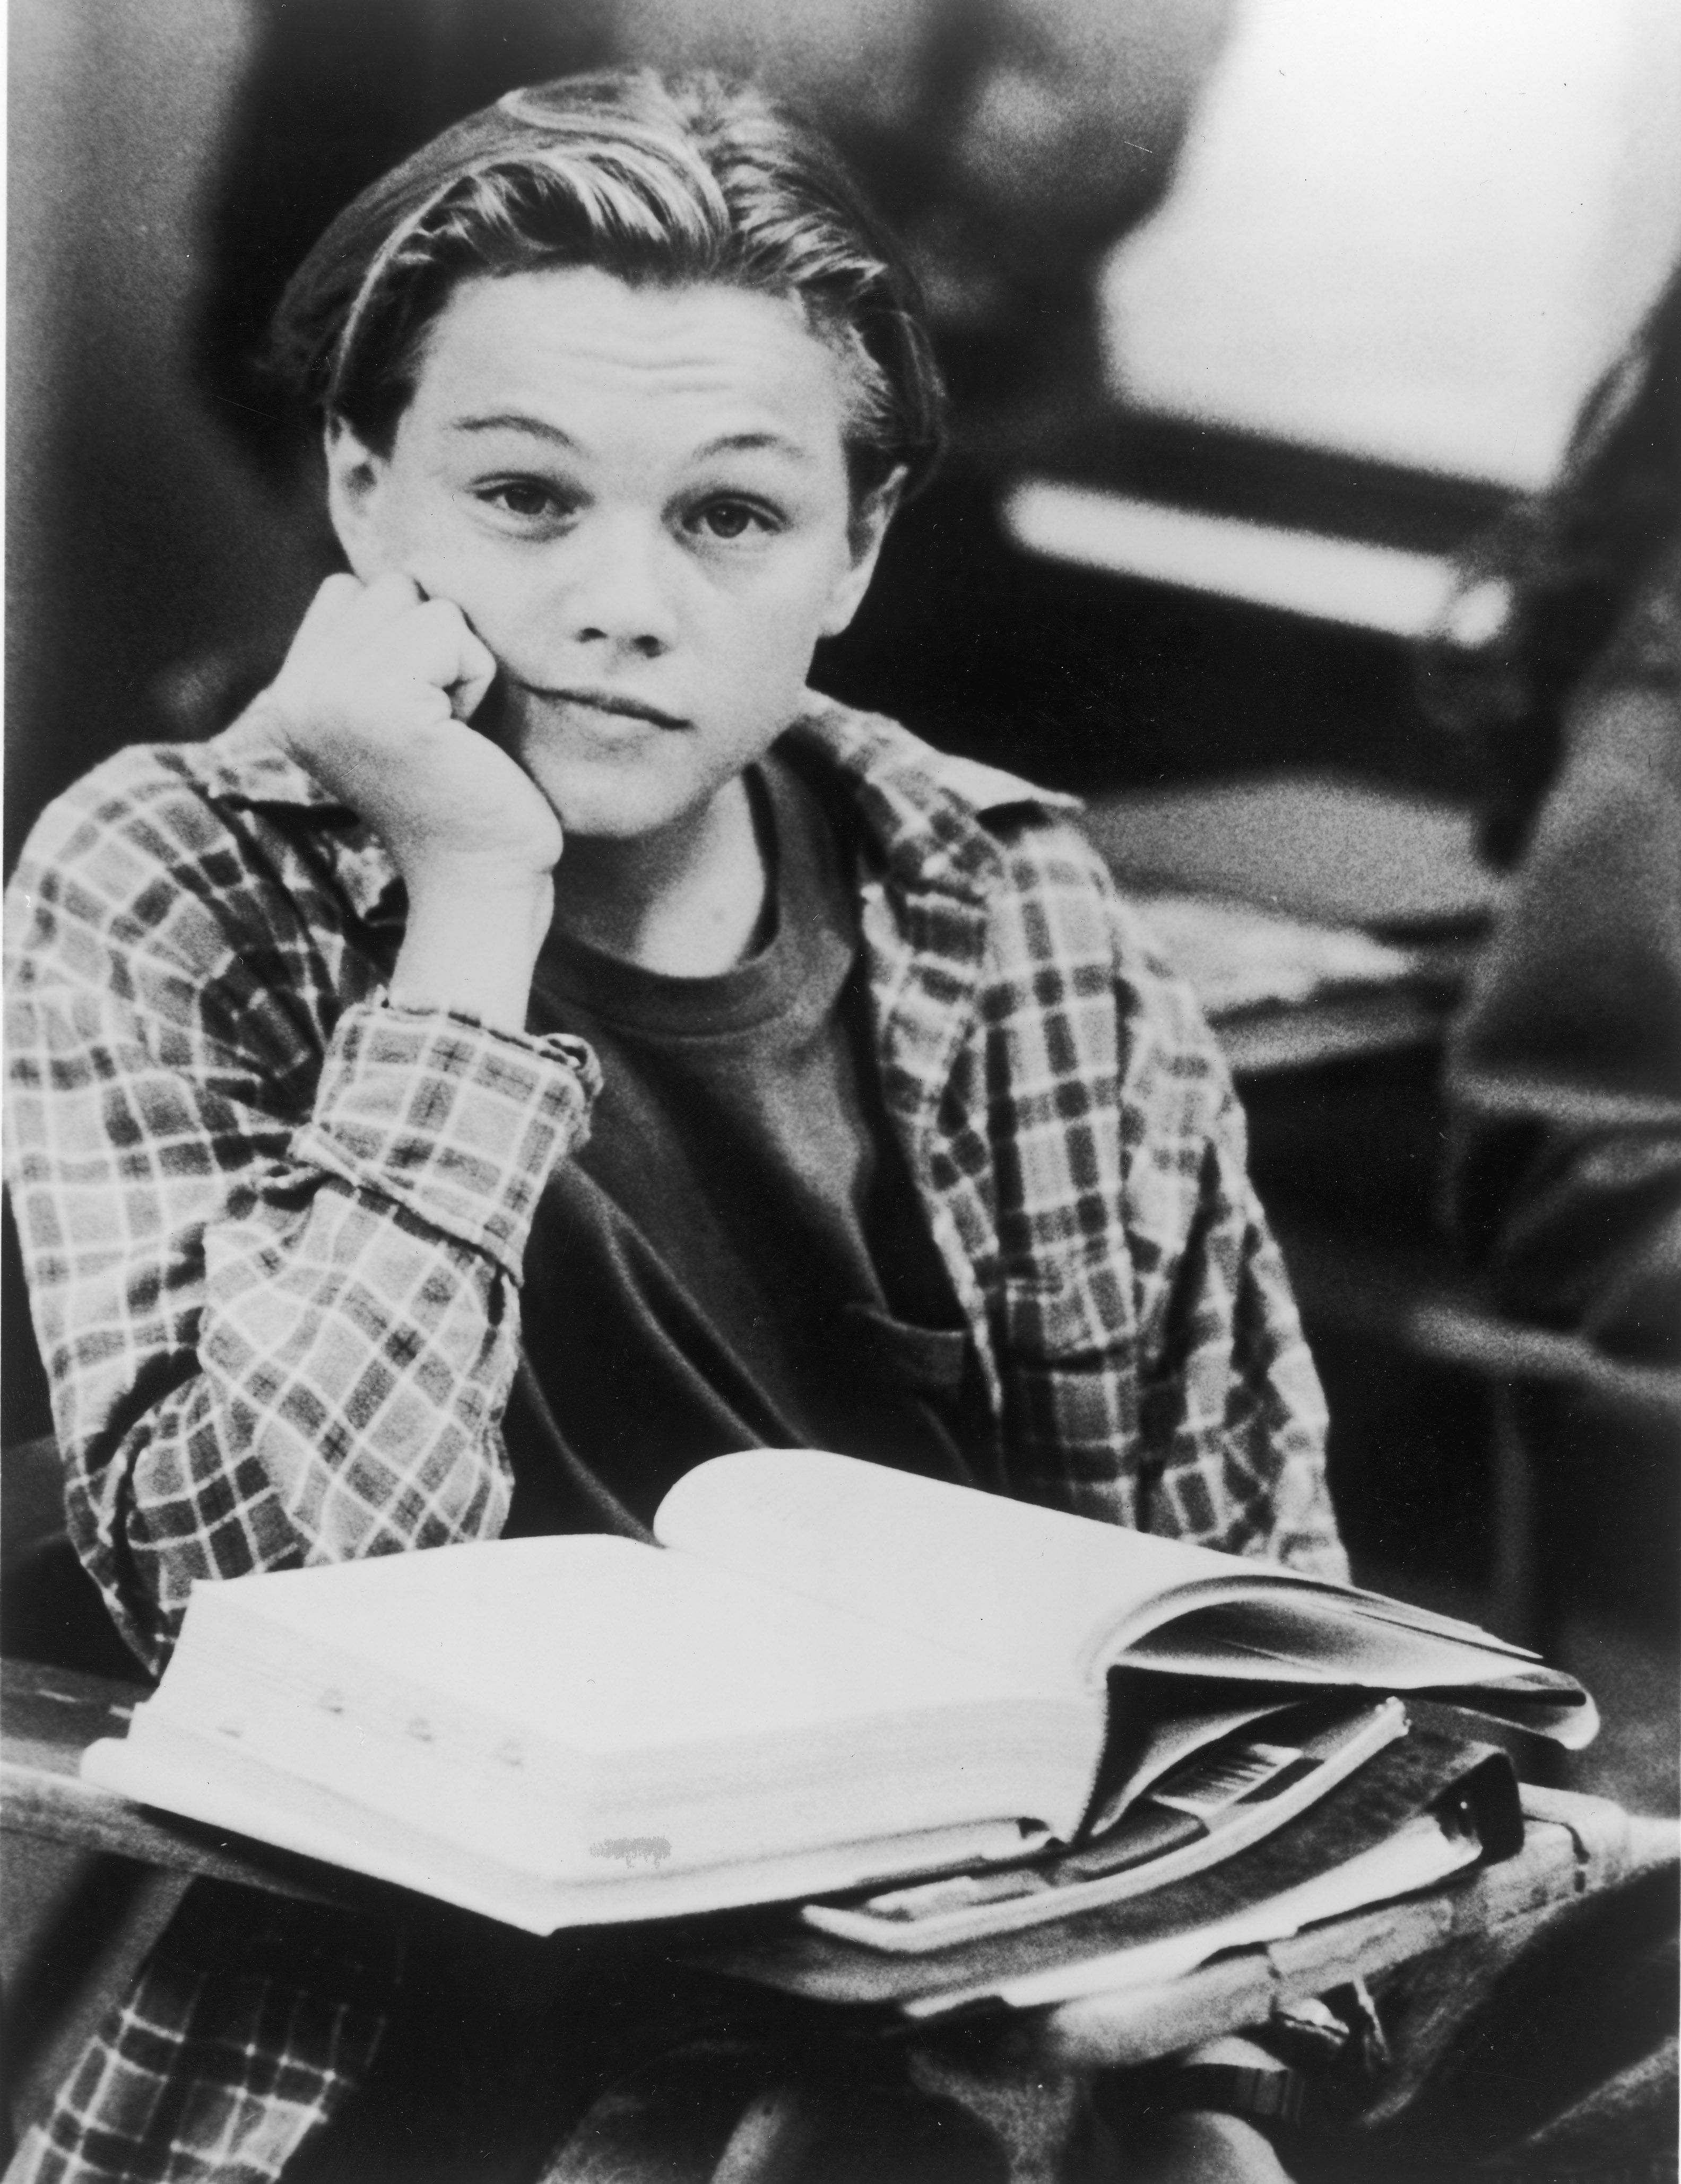 DiCaprio In Classroom From 'Growing Pains,' c. 1991.